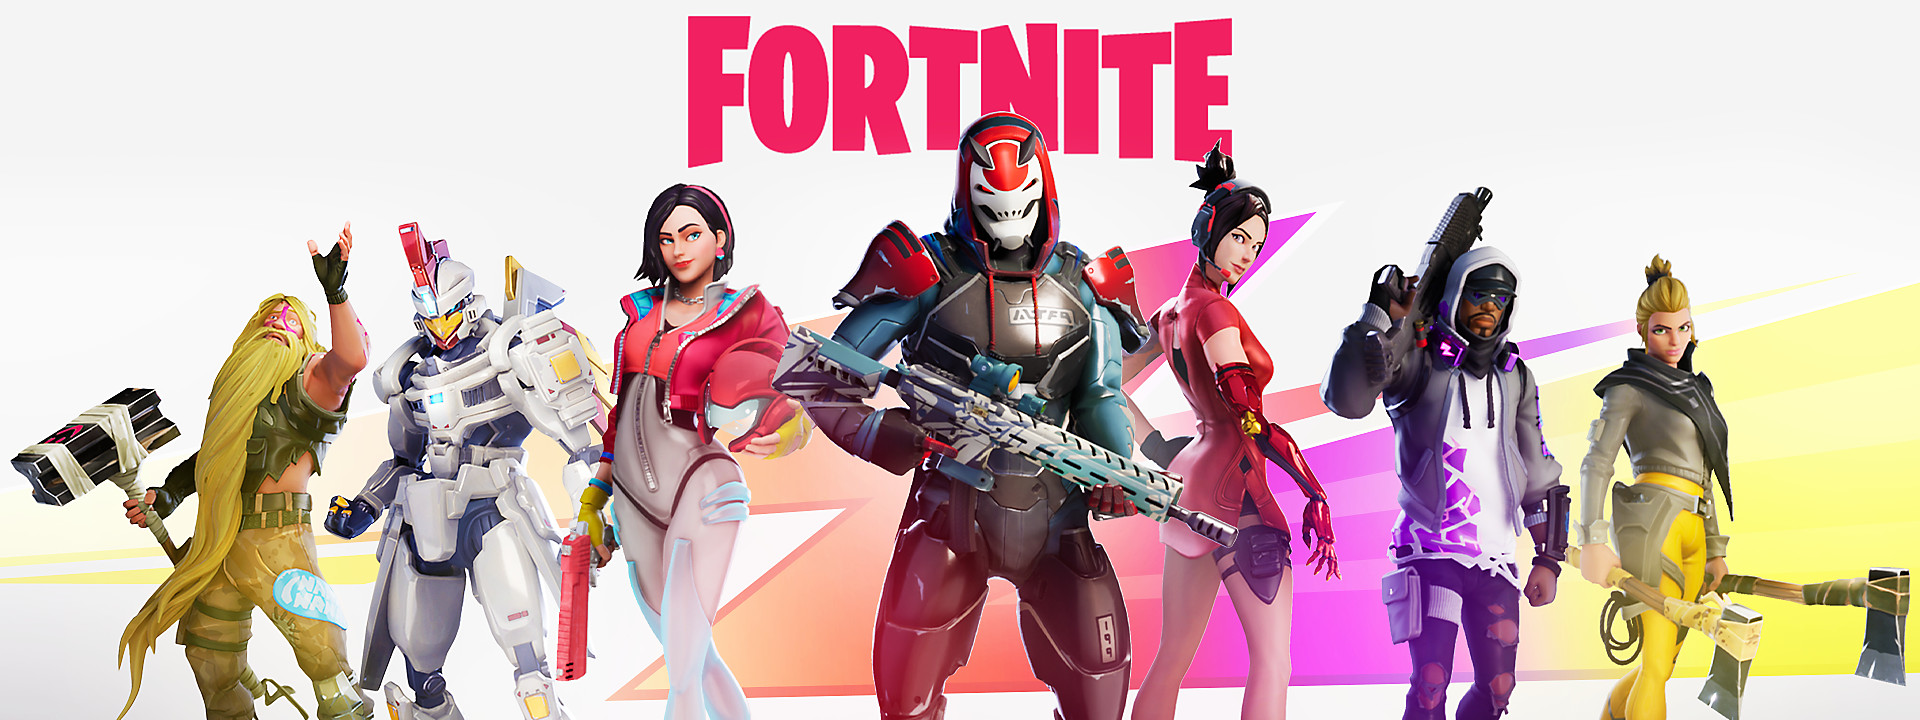 Fortnite Season 9 - Now Available